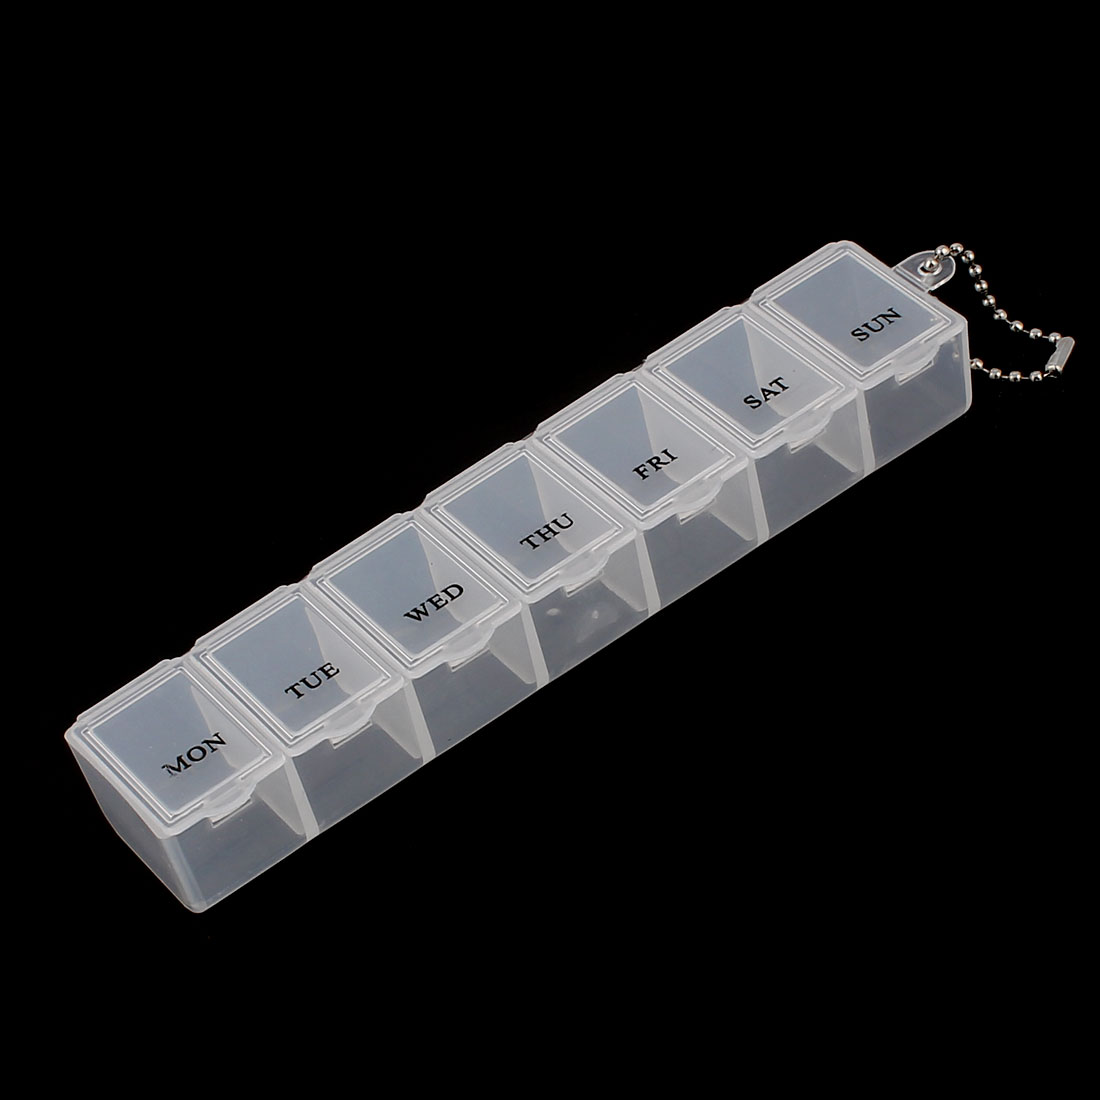 Weekly 7 Day Pill Box Tablet Holder Organizer Container Dispenser Case Clear White